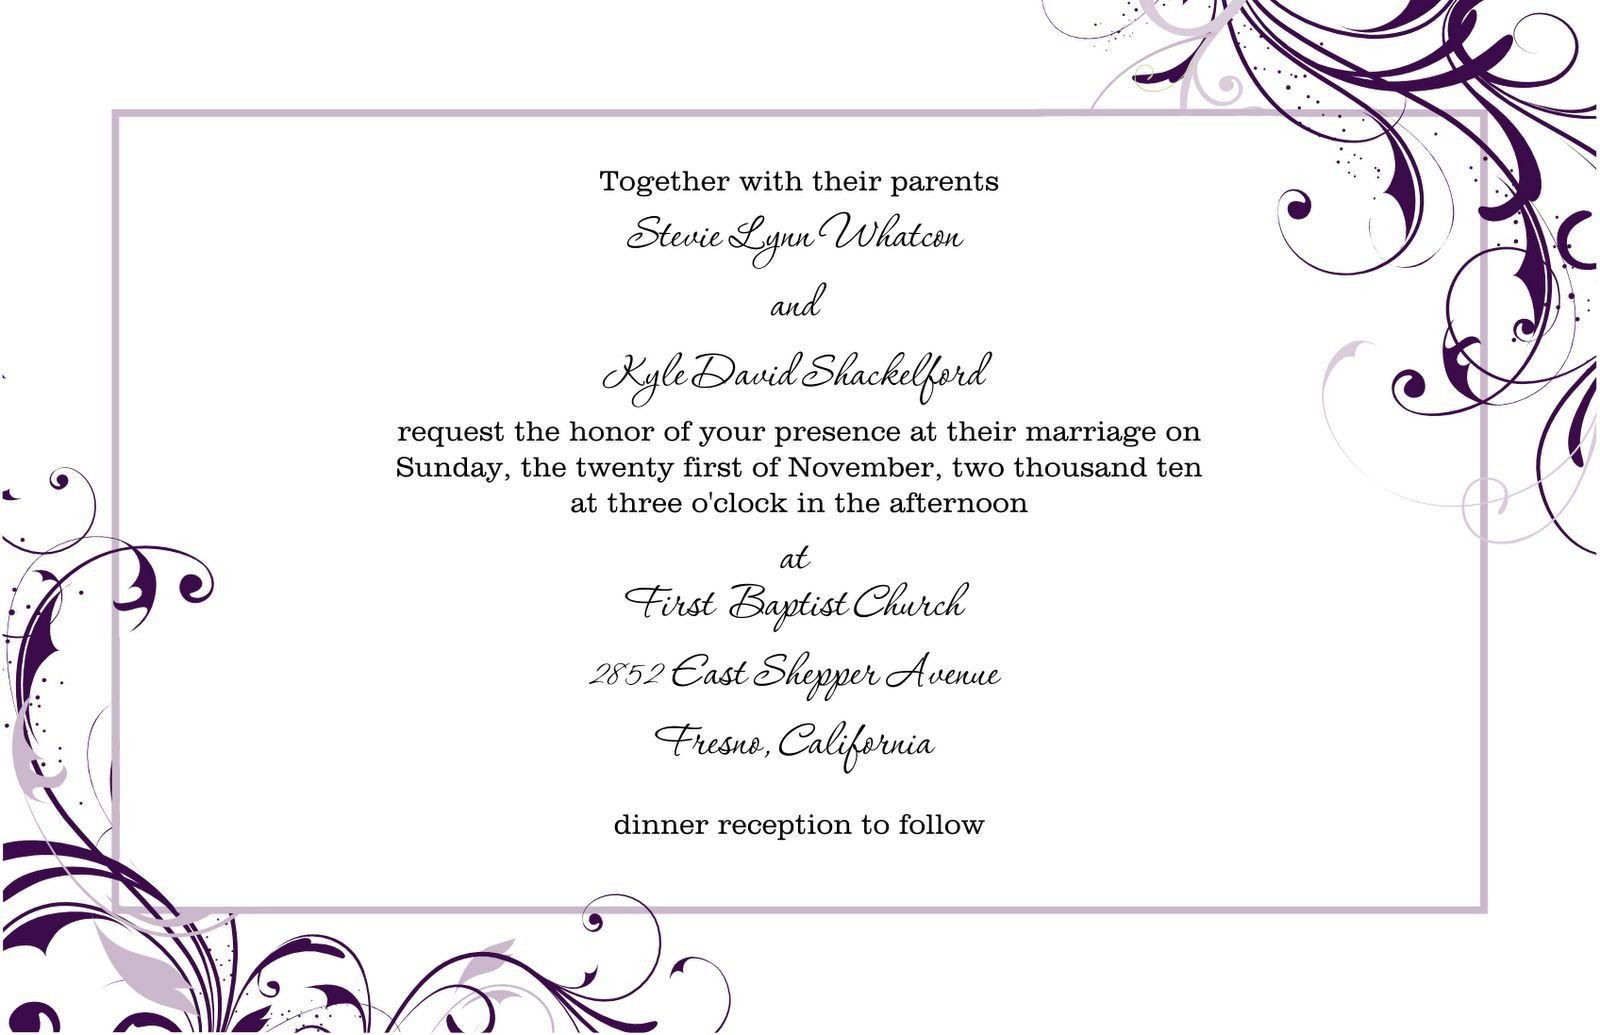 Wedding Invitation Templates Word Free Blank Wedding Invitation Templates for Microsoft Word